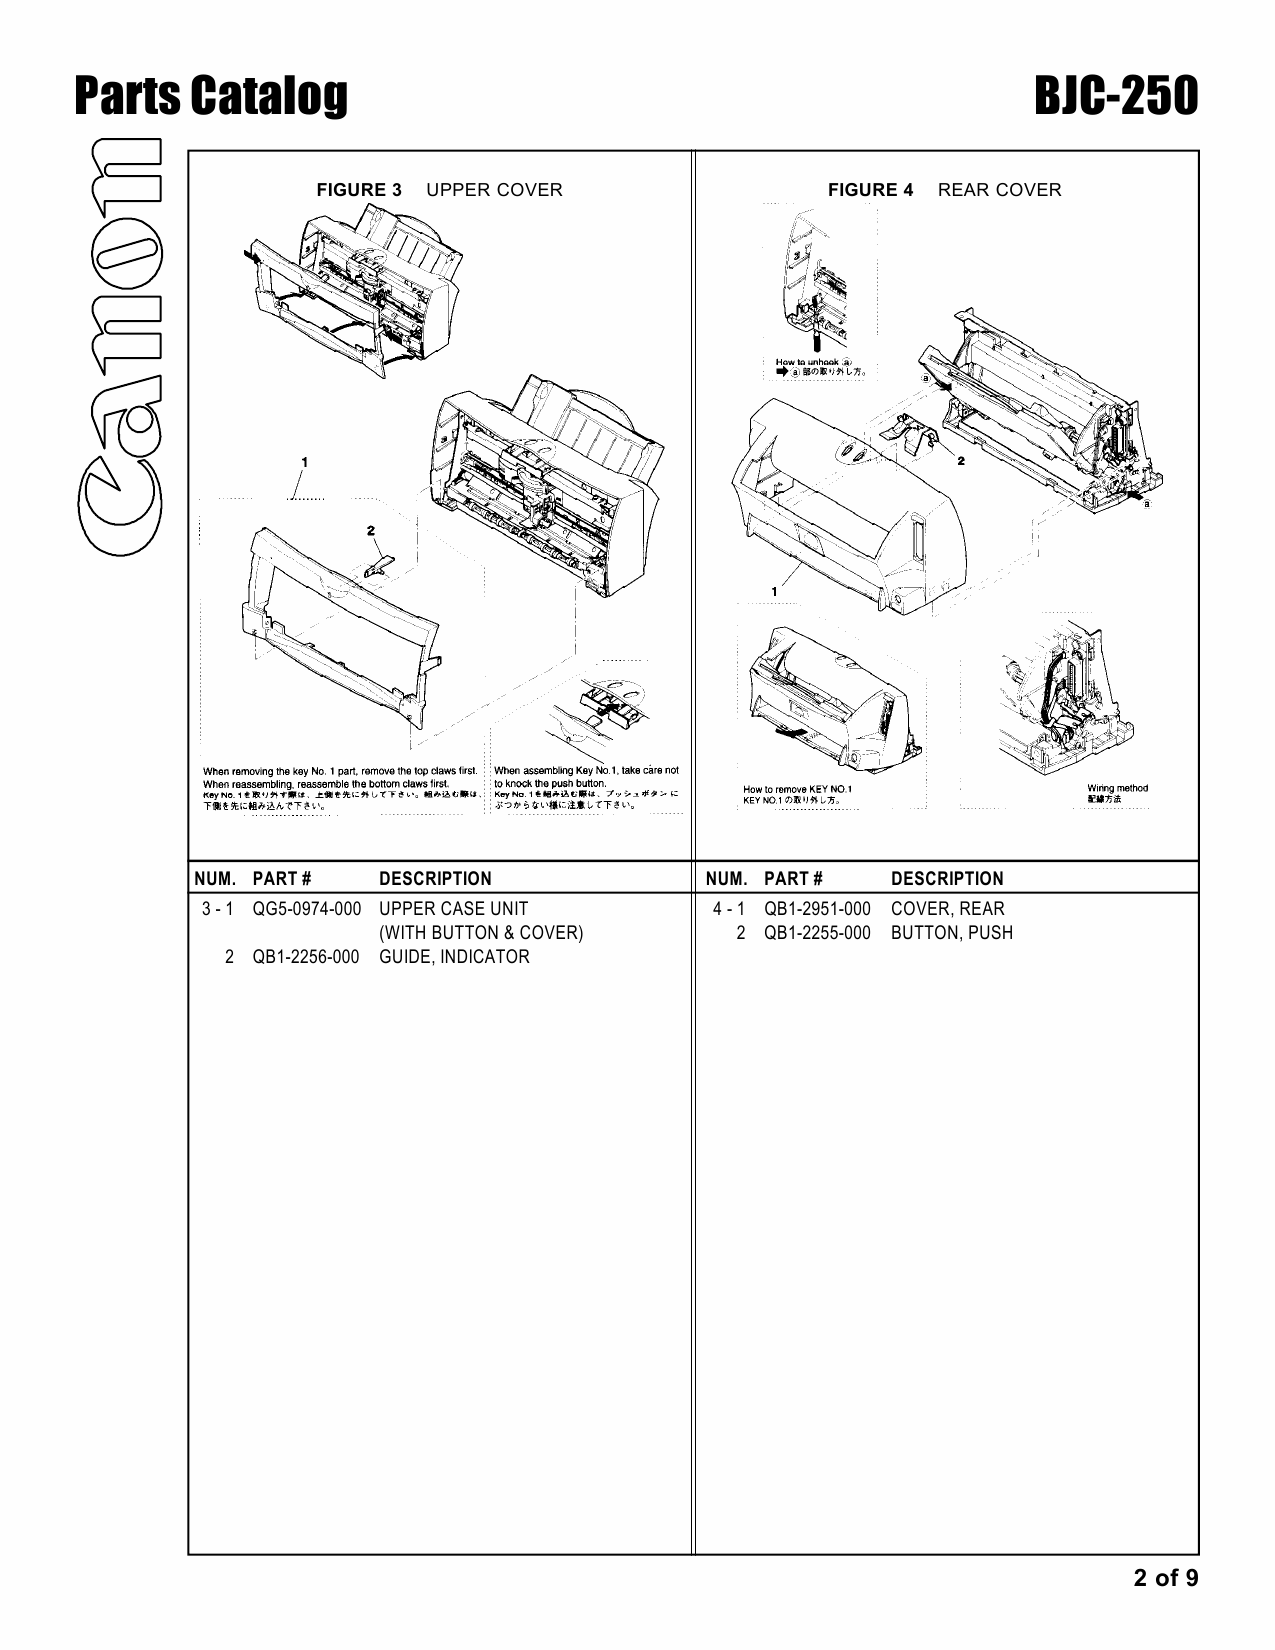 Canon BubbleJet BJC-250 Parts Catalog Manual-2